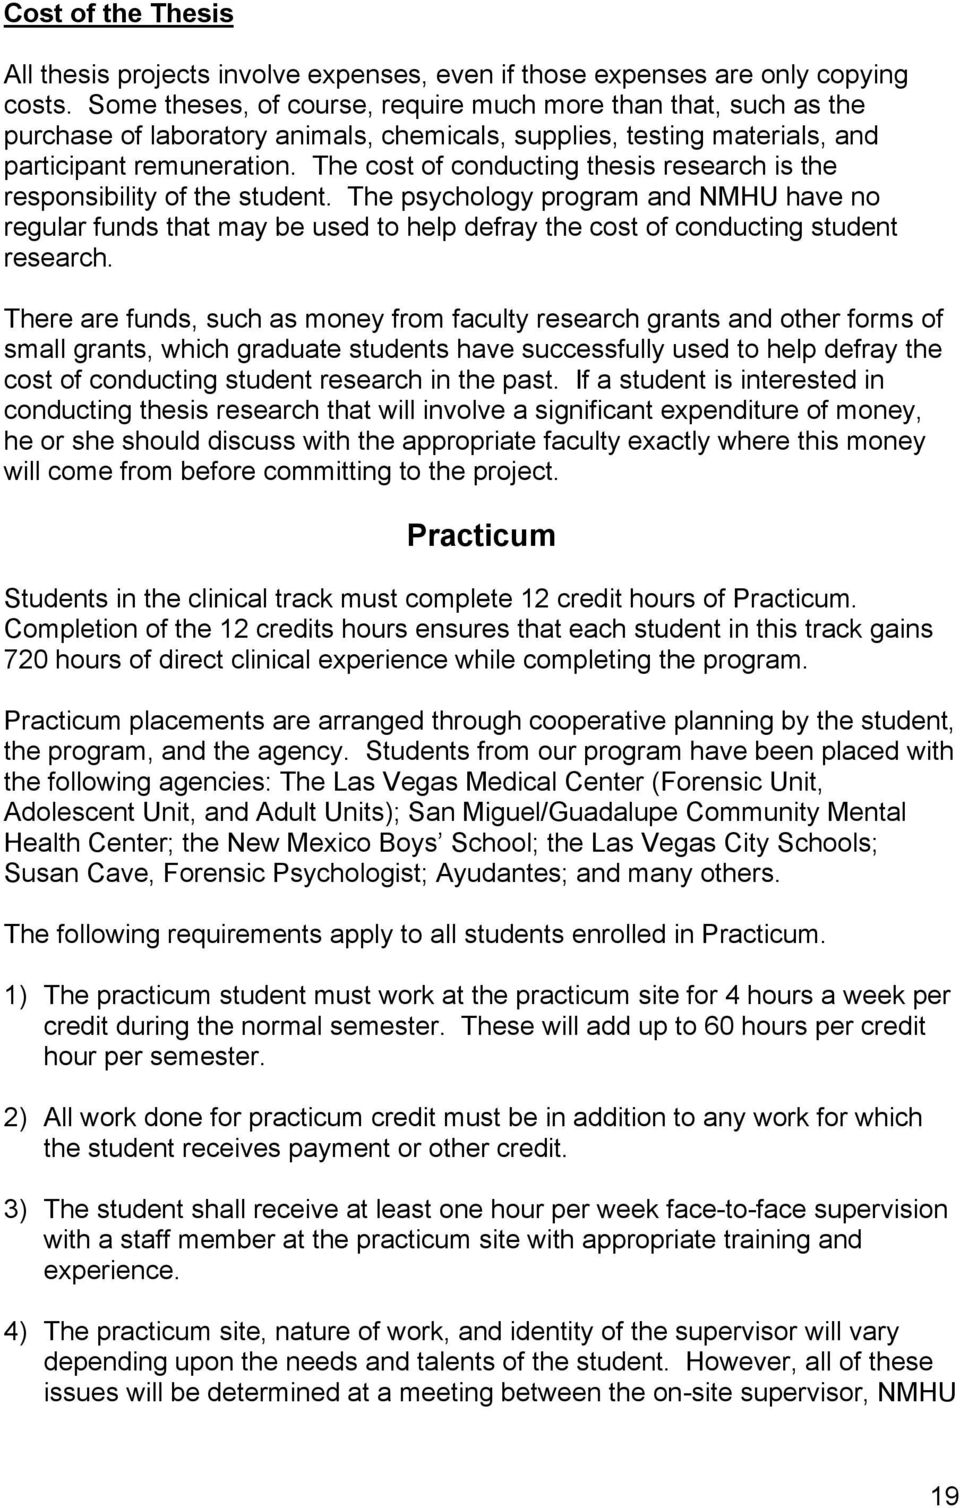 The cost of conducting thesis research is the responsibility of the student.